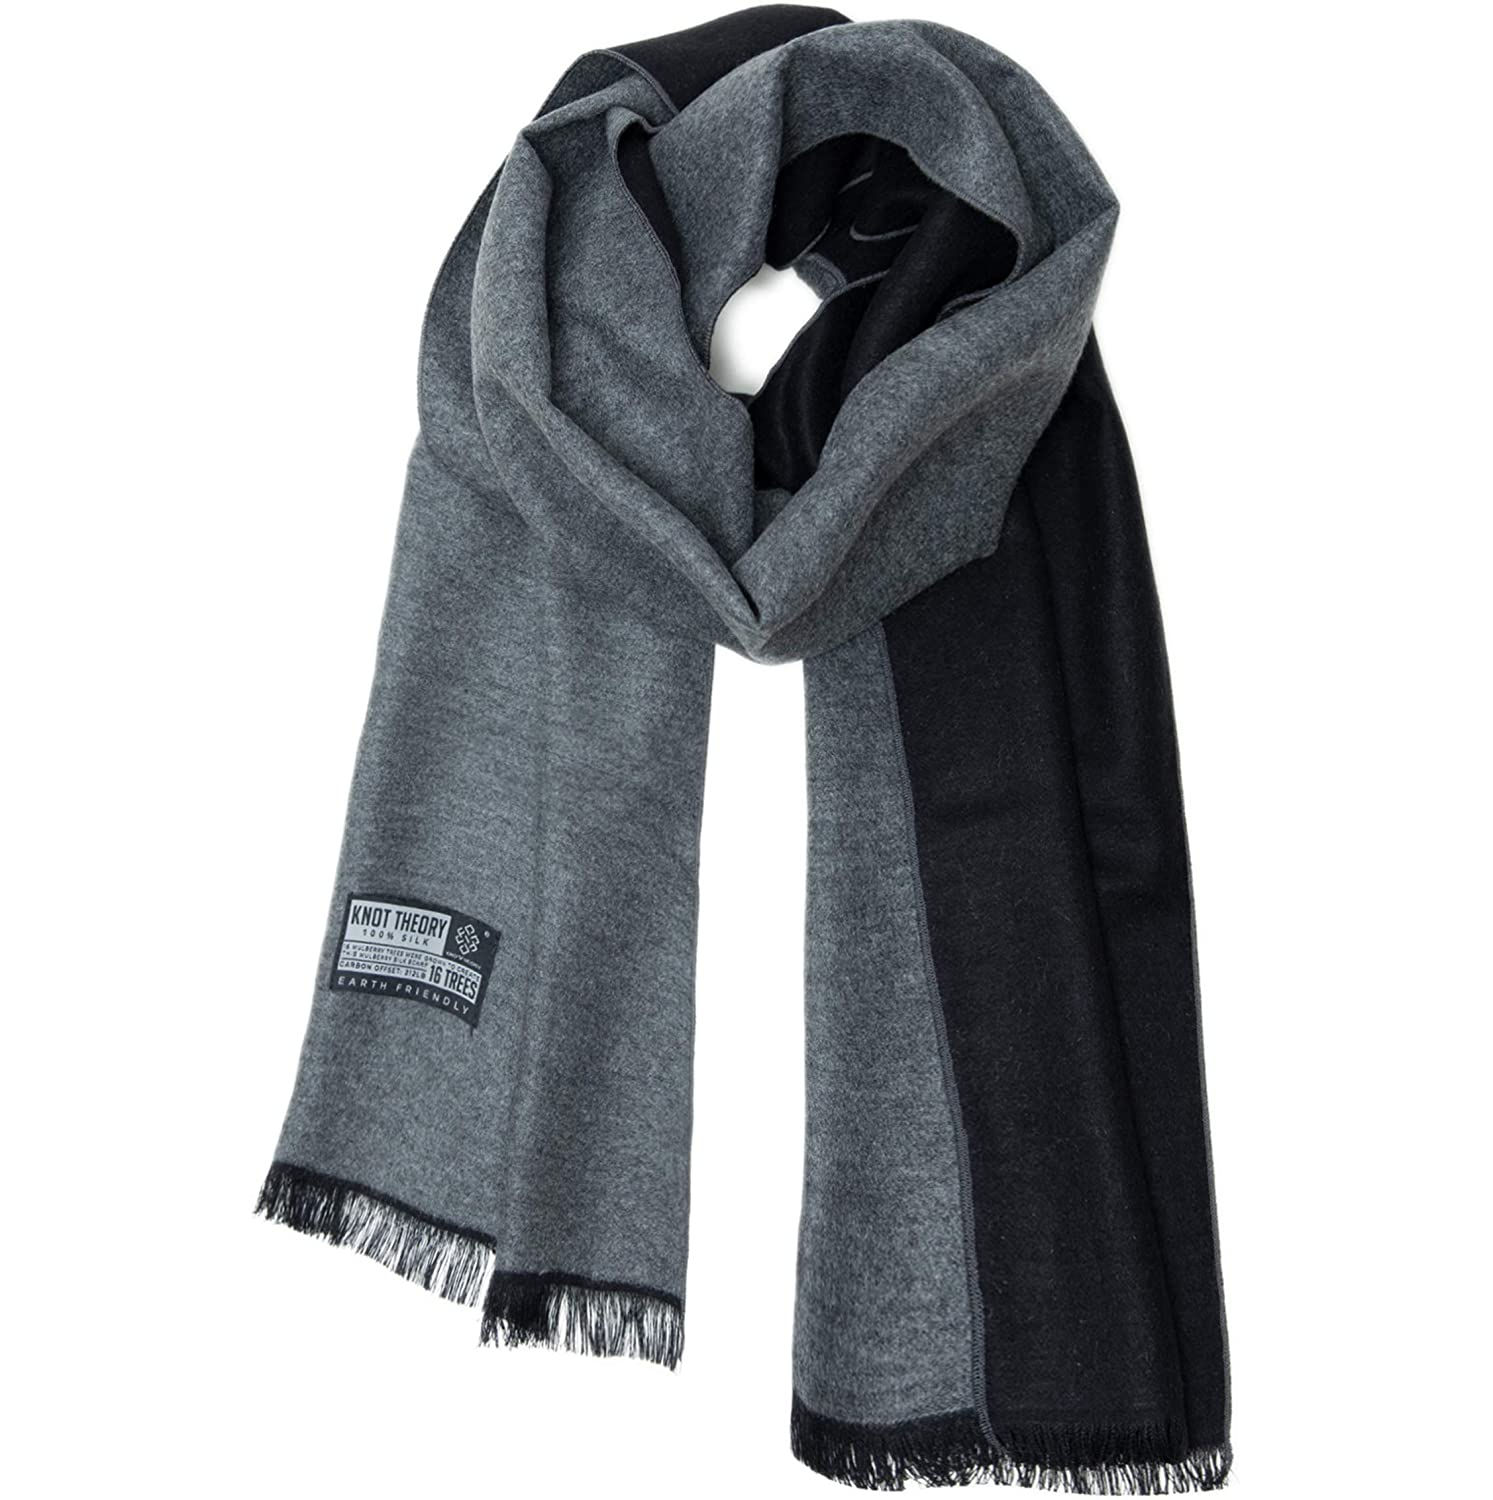 9998f0b2a Knot Theory Silk Winter Scarf Softer than Cashmere - Black Grey for Men &  Women at Amazon Men's Clothing store: